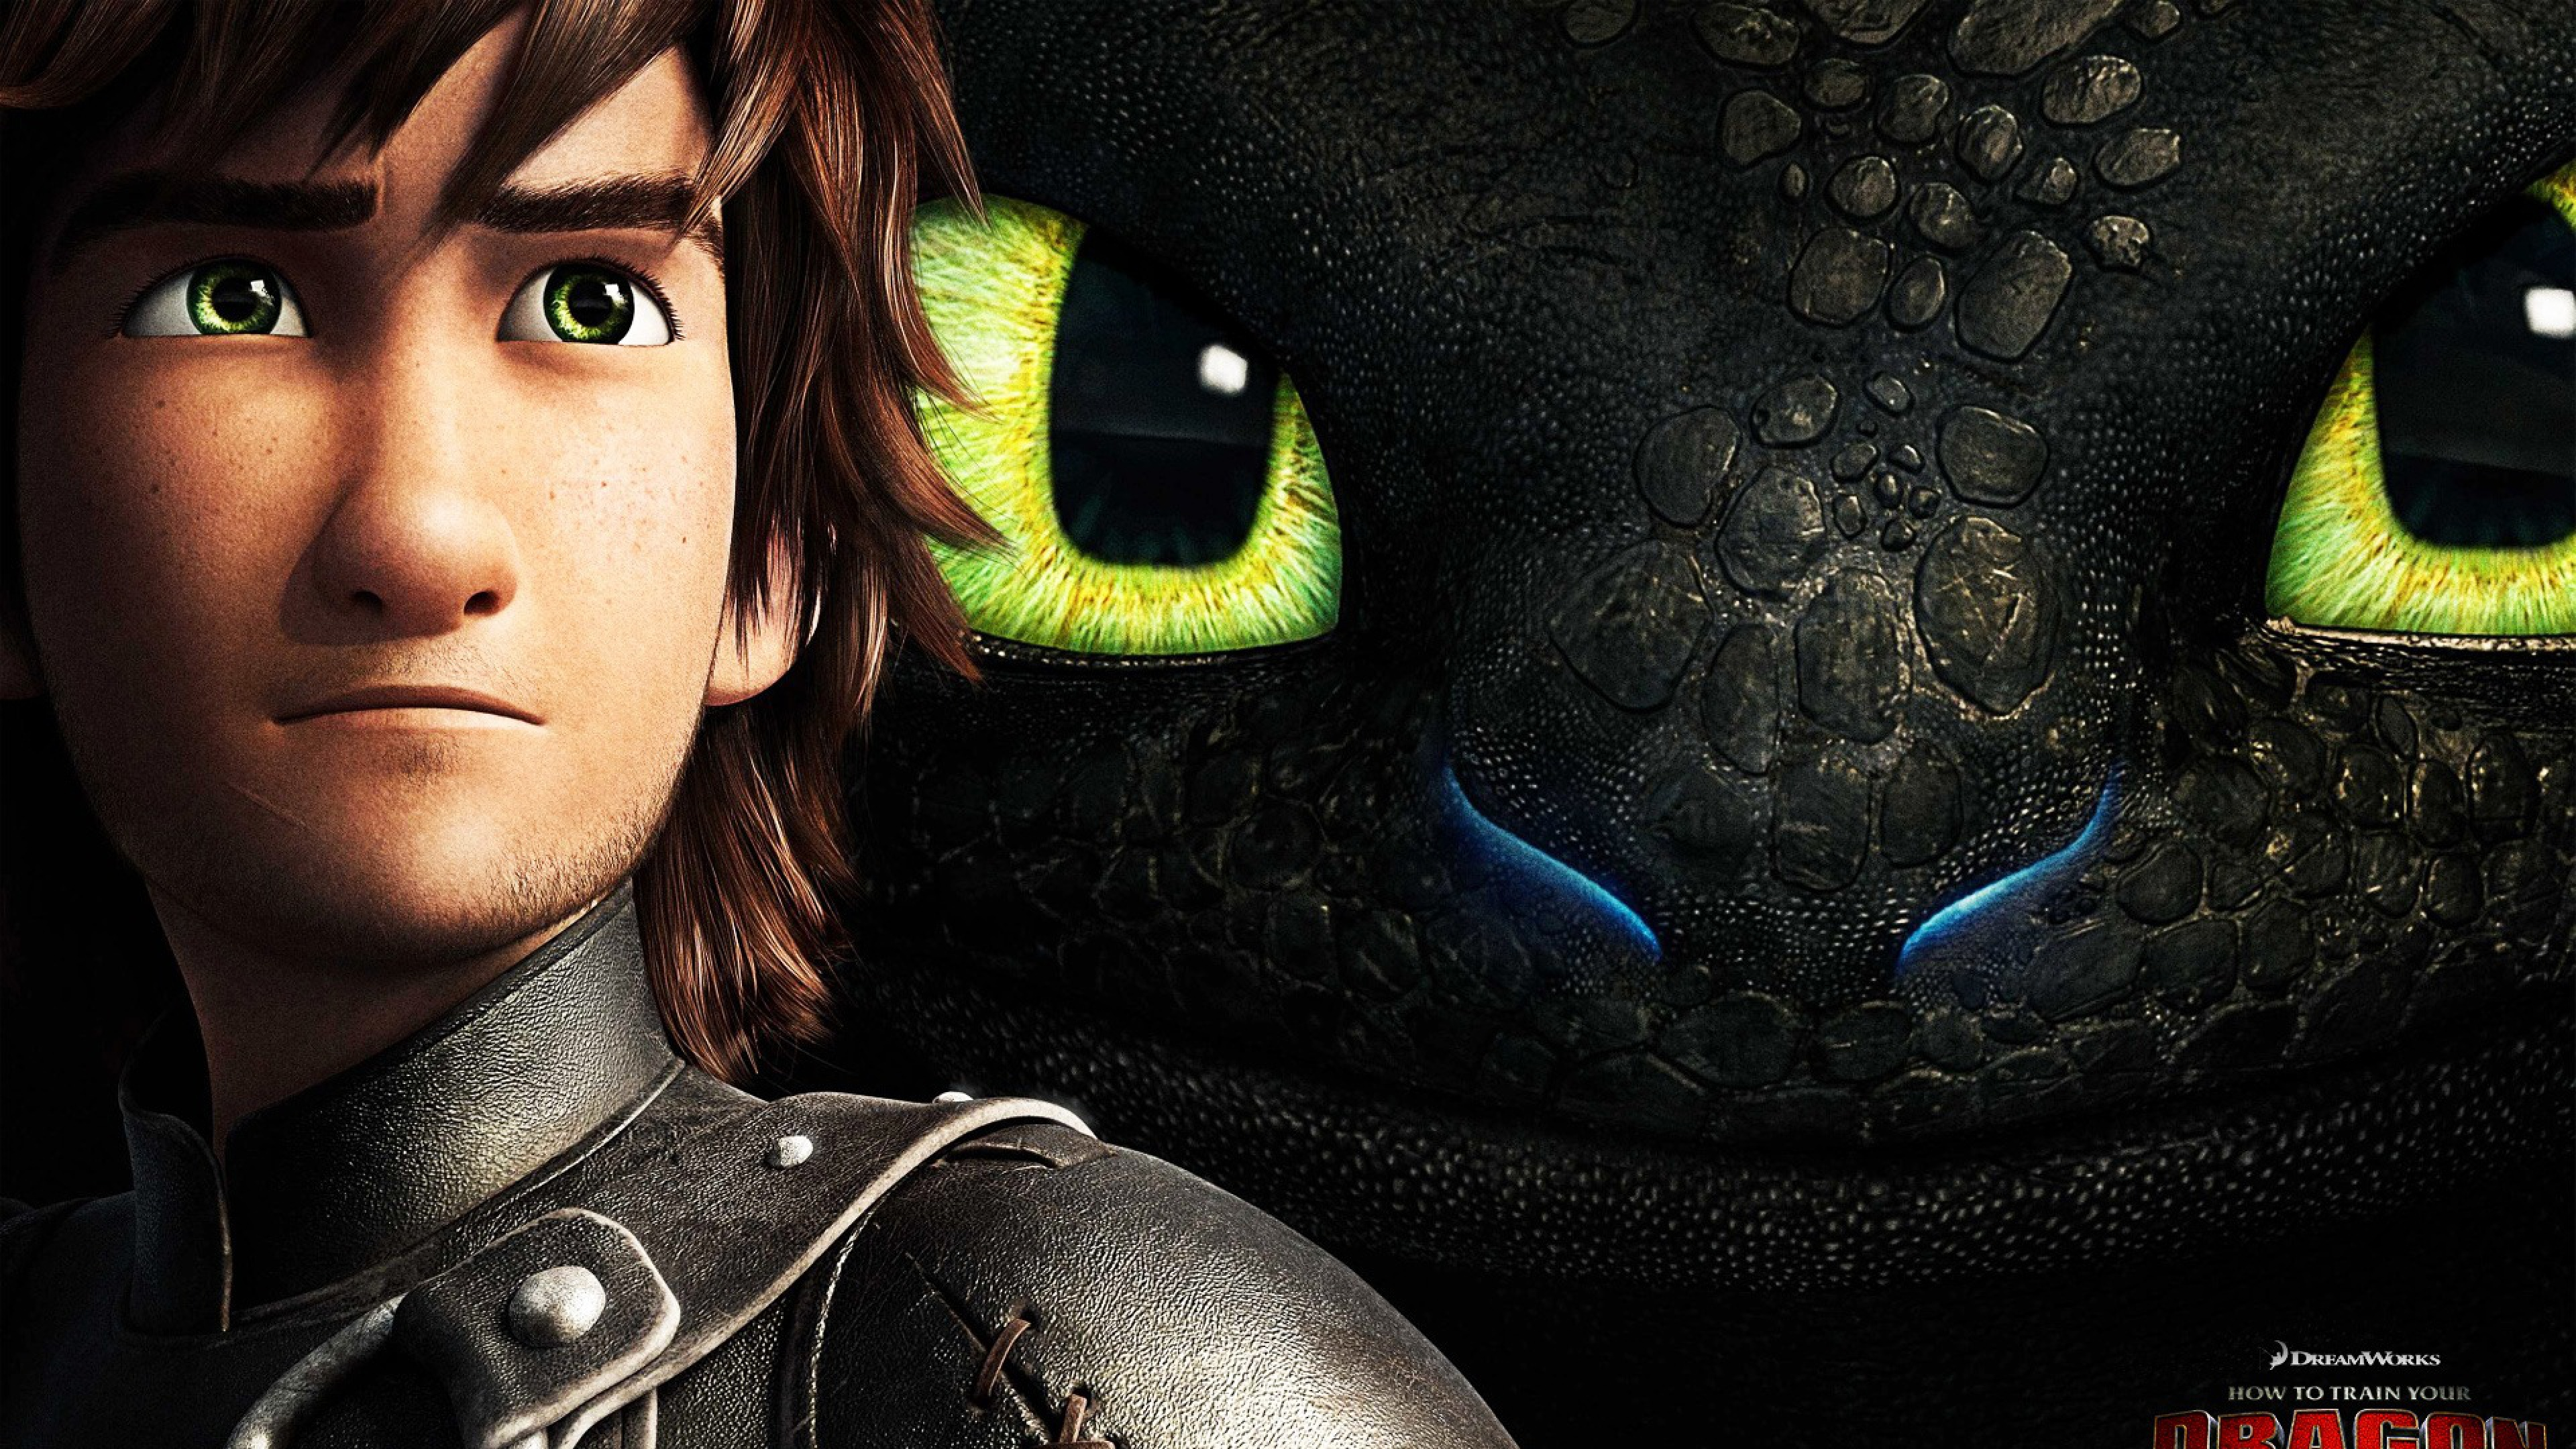 How To Train Your Dragon Hd Movies 4k Wallpapers Images Backgrounds Photos And Pictures